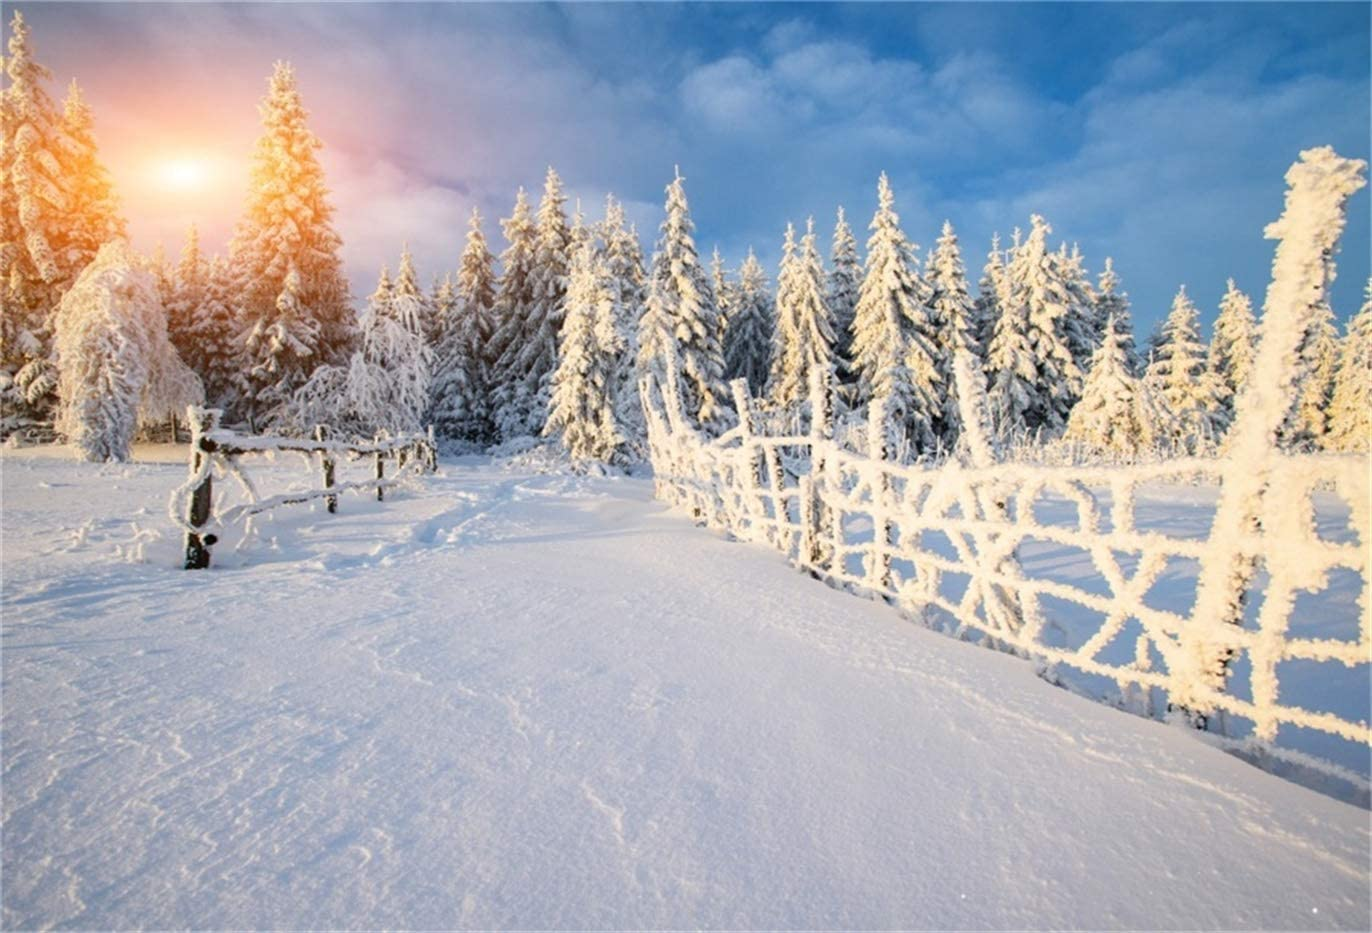 Winter 10x8 FT Vinyl Photography Background Backdrops,Wooden Houses on Austrian Mountains Snowy Forest Cottage Holiday Destination Background for Photo Backdrop Studio Props Photo Backdrop Wall